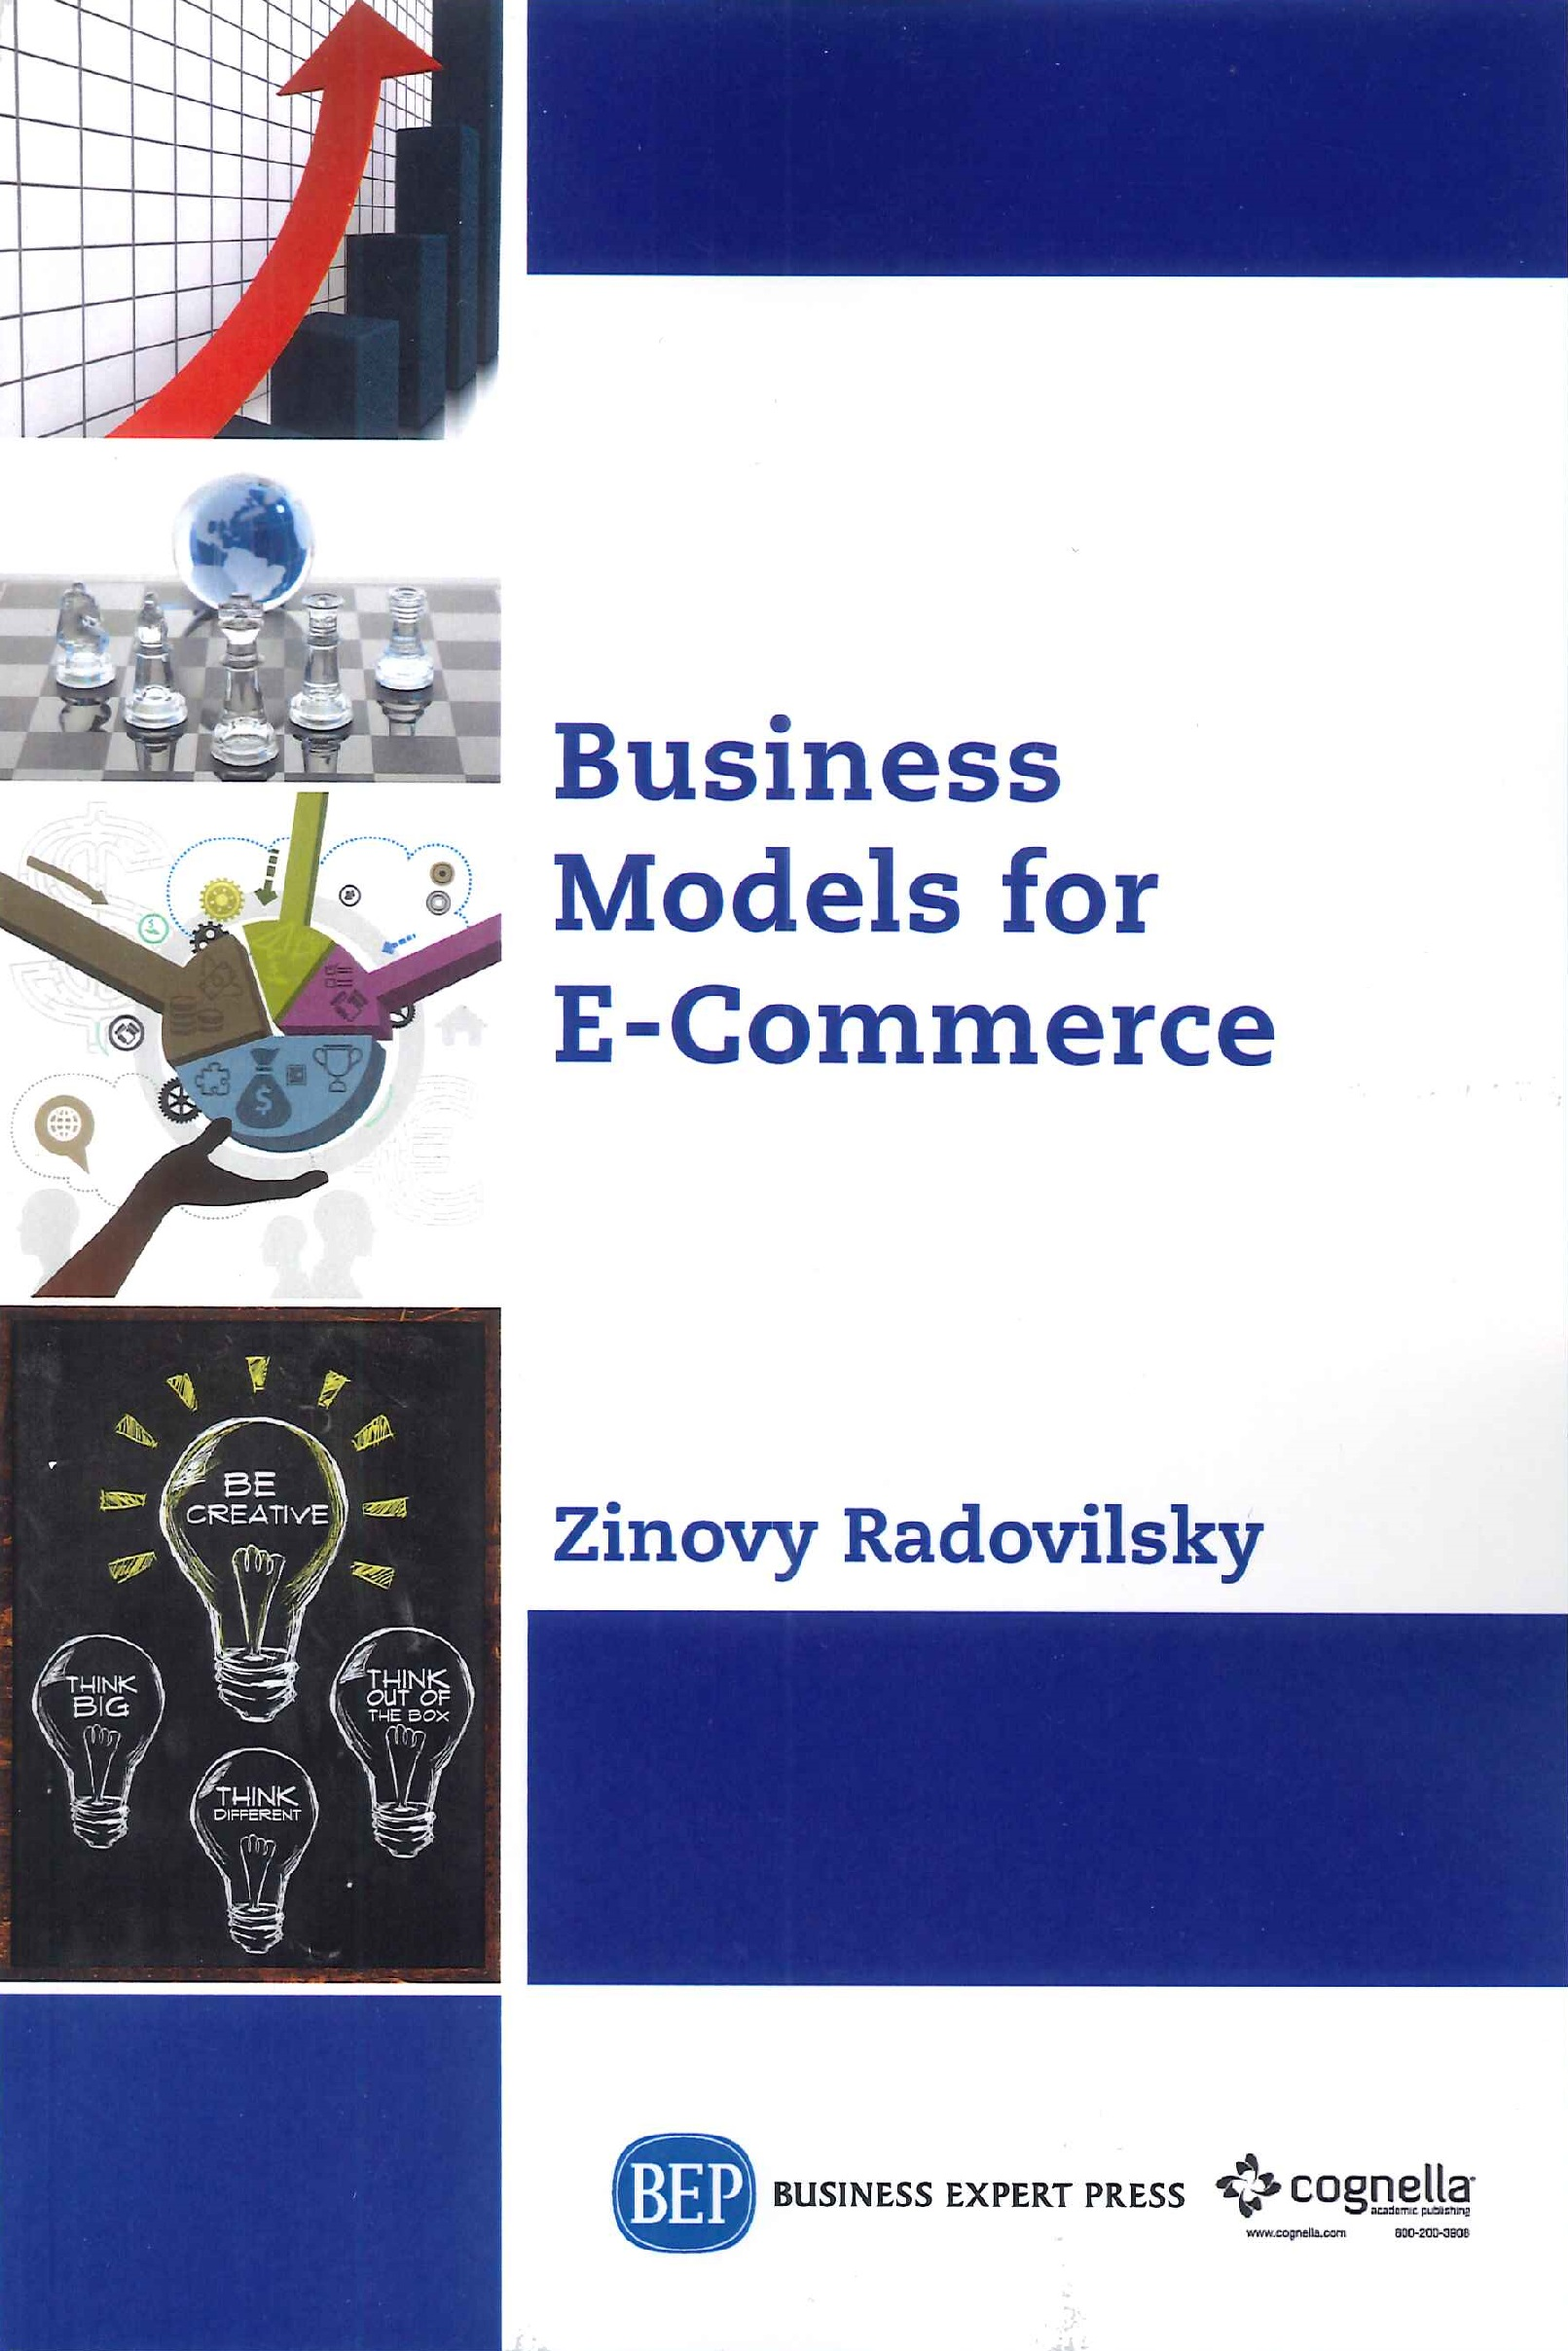 Business models for e-commerce